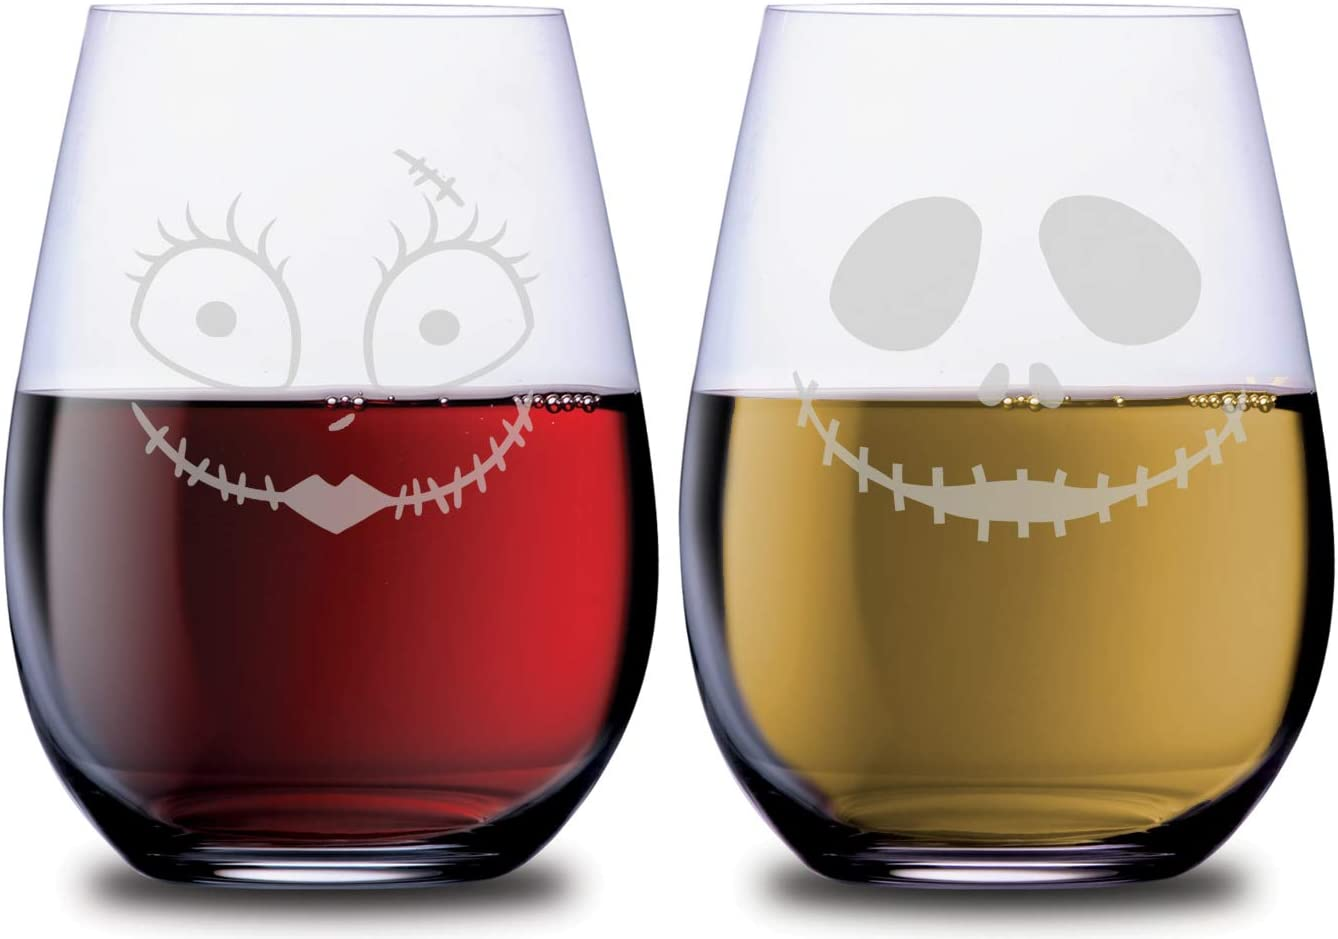 Jack /& Sally The Nightmare Before ChristmasWine Glasses Hand Etched